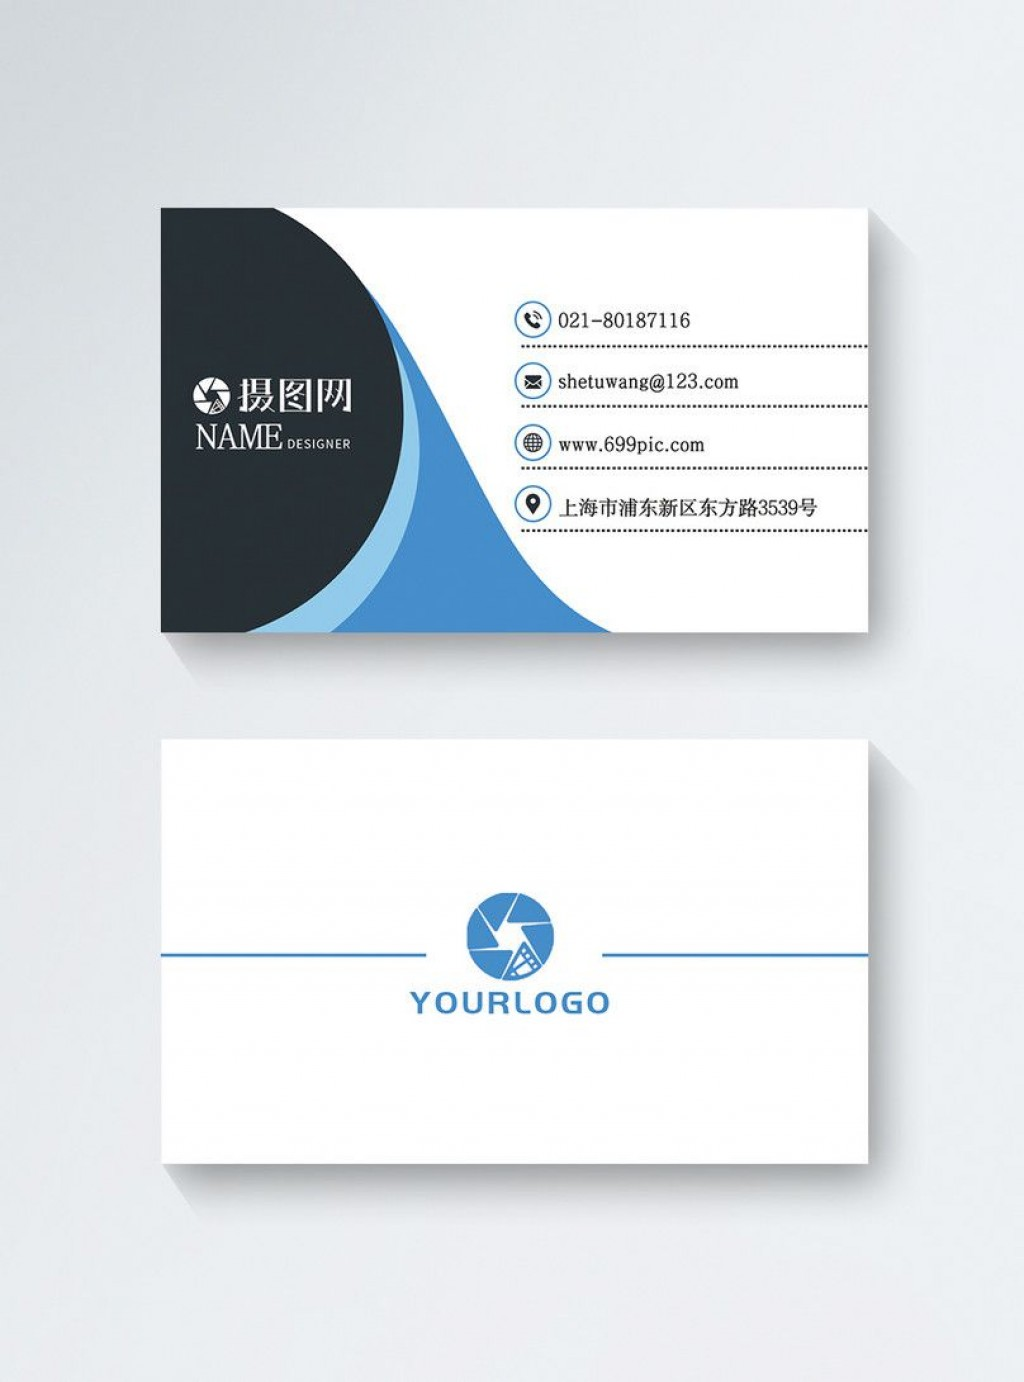 005 Phenomenal Free Download Busines Card Template High Definition  For Microsoft Publisher Photoshop PowerpointLarge